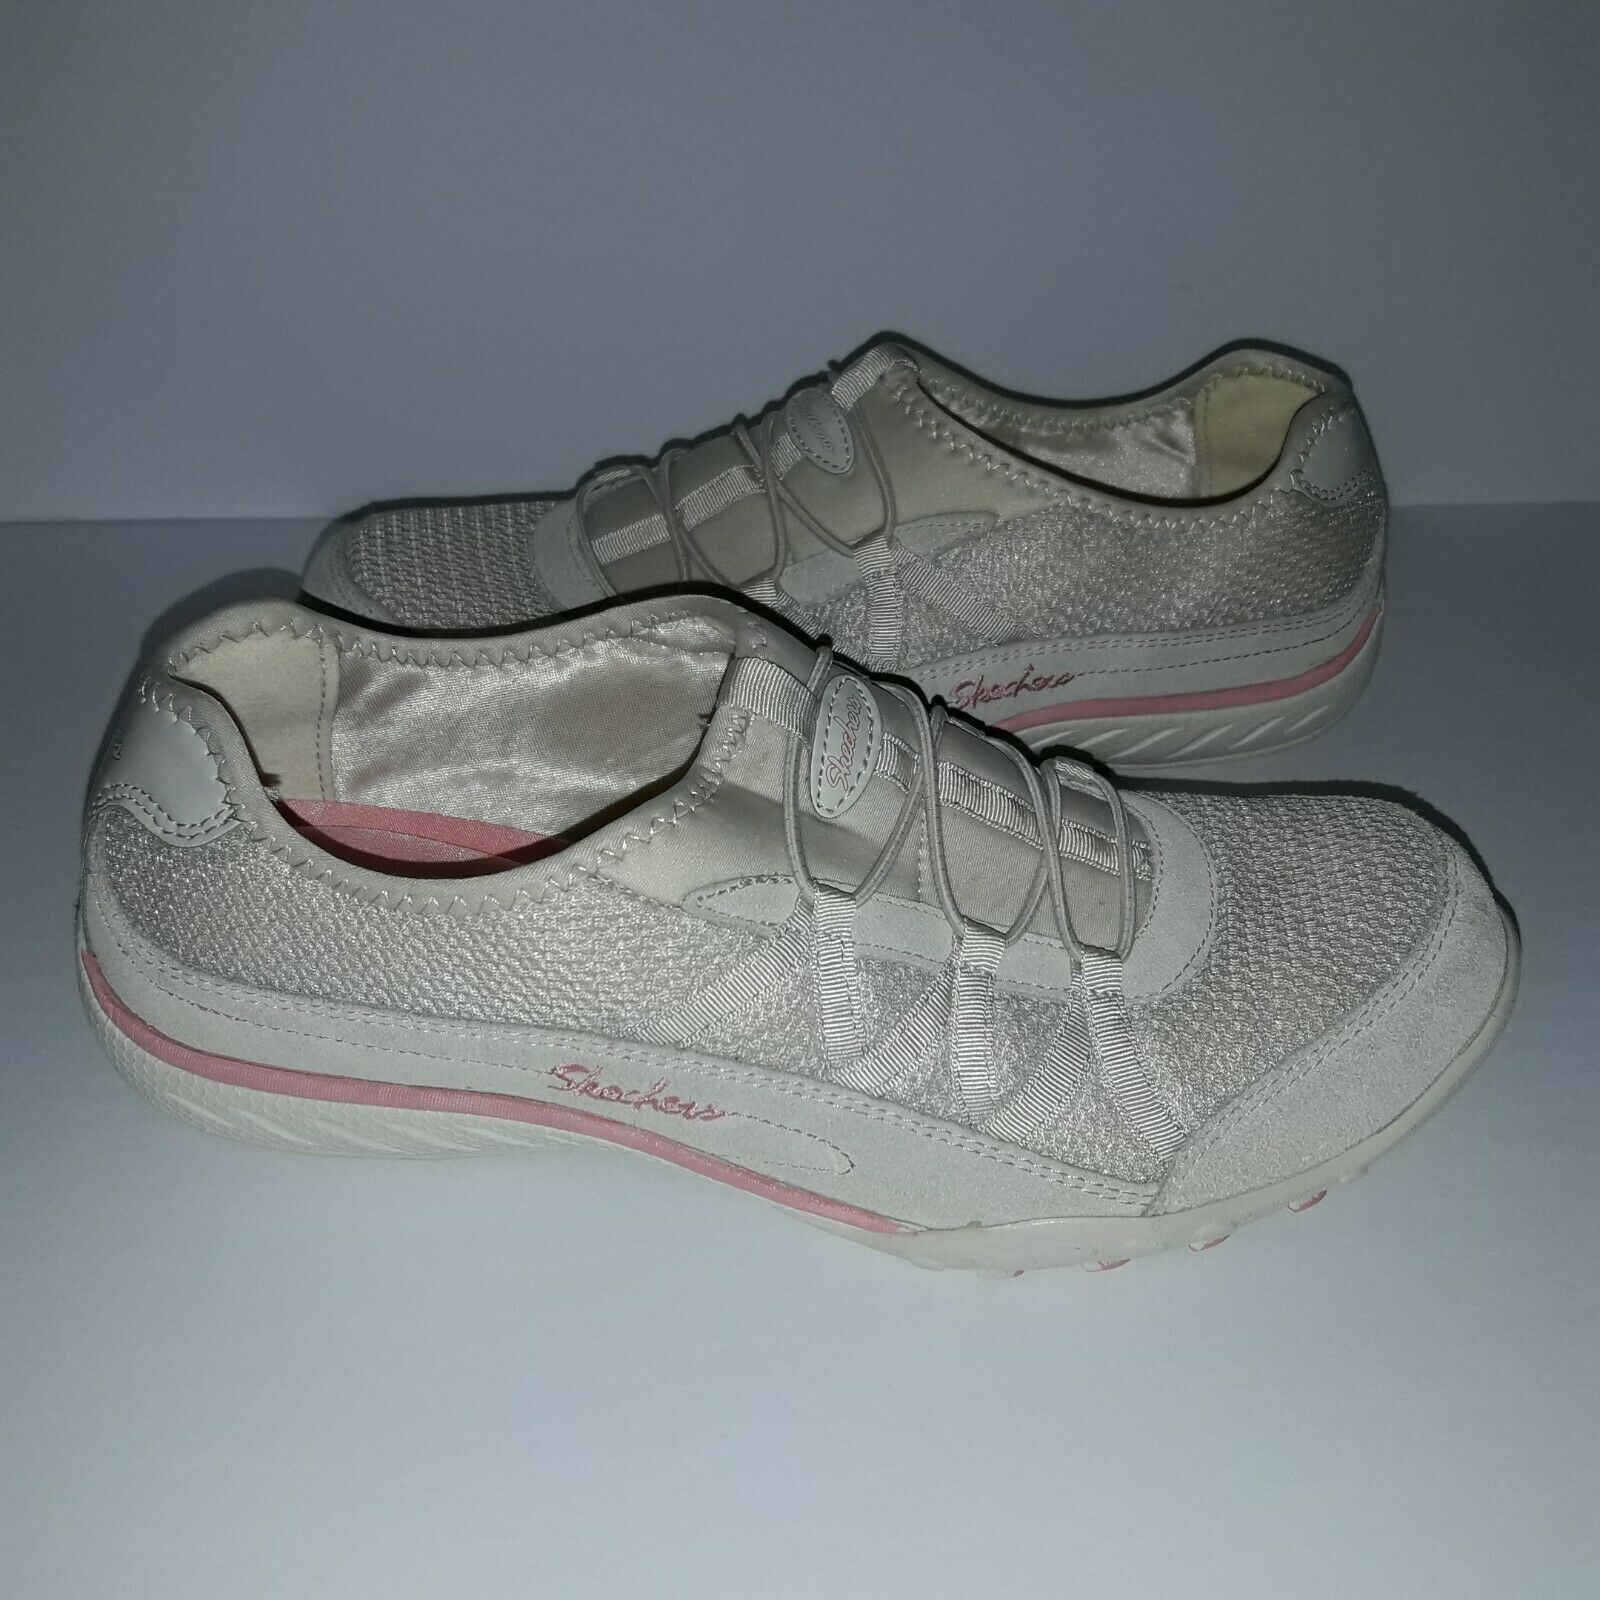 Women's Skechers Relaxed Fit Savvy Baroness shoe Size 9 Natural/Pink